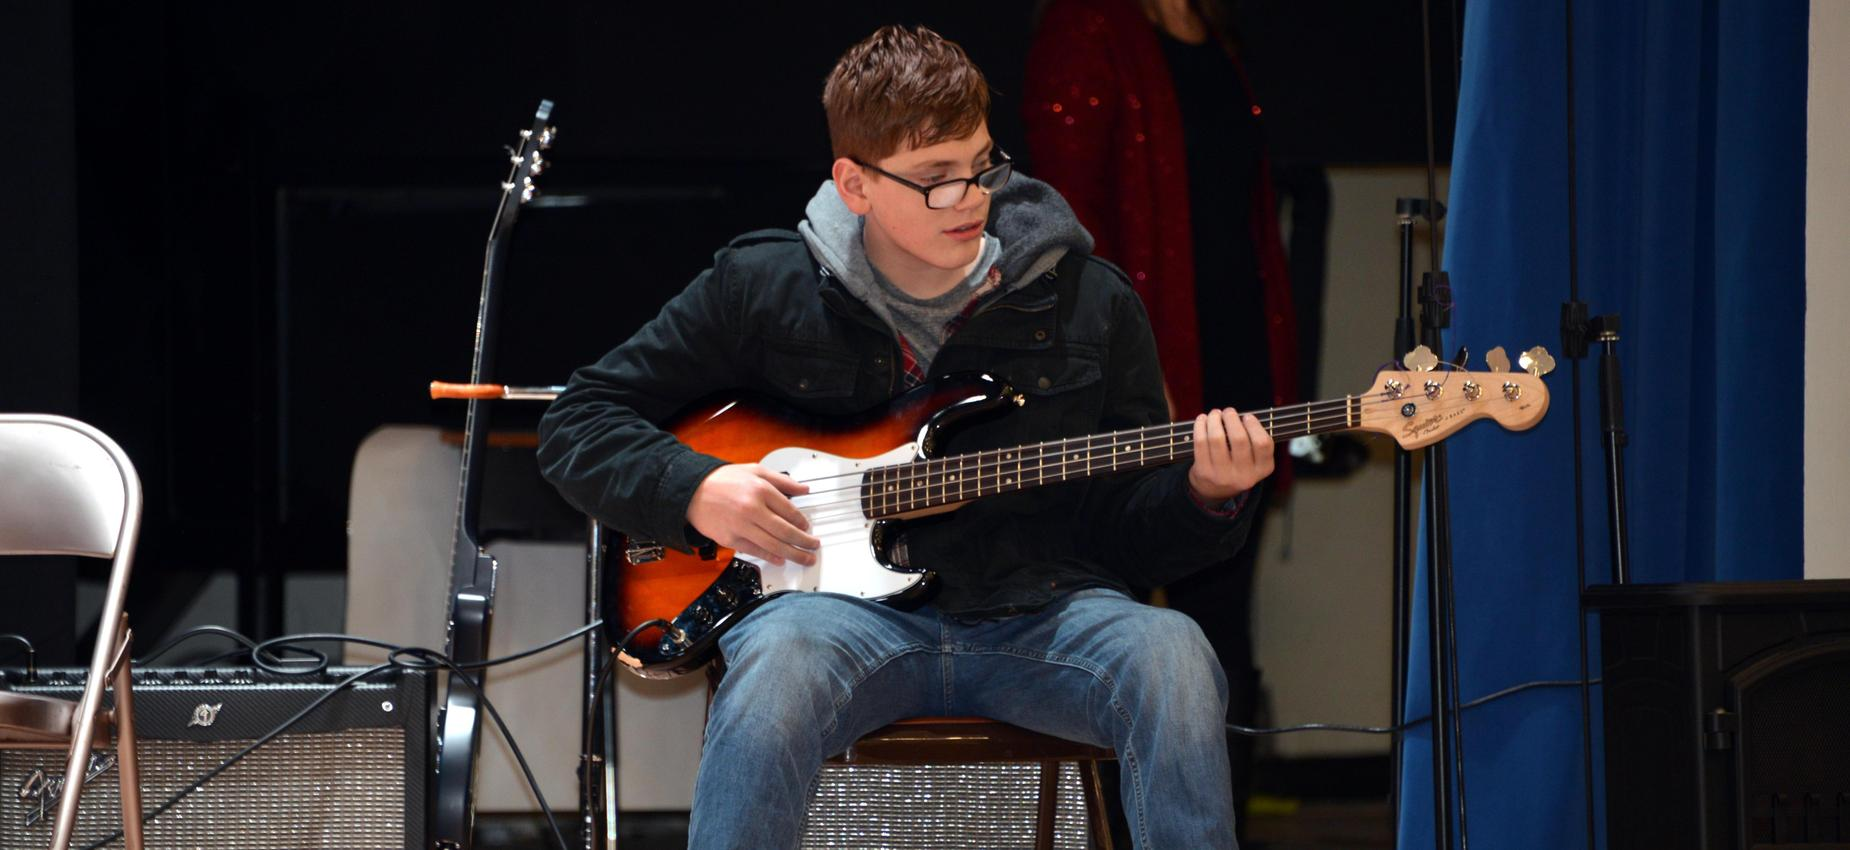 Student sitting and playing guitar